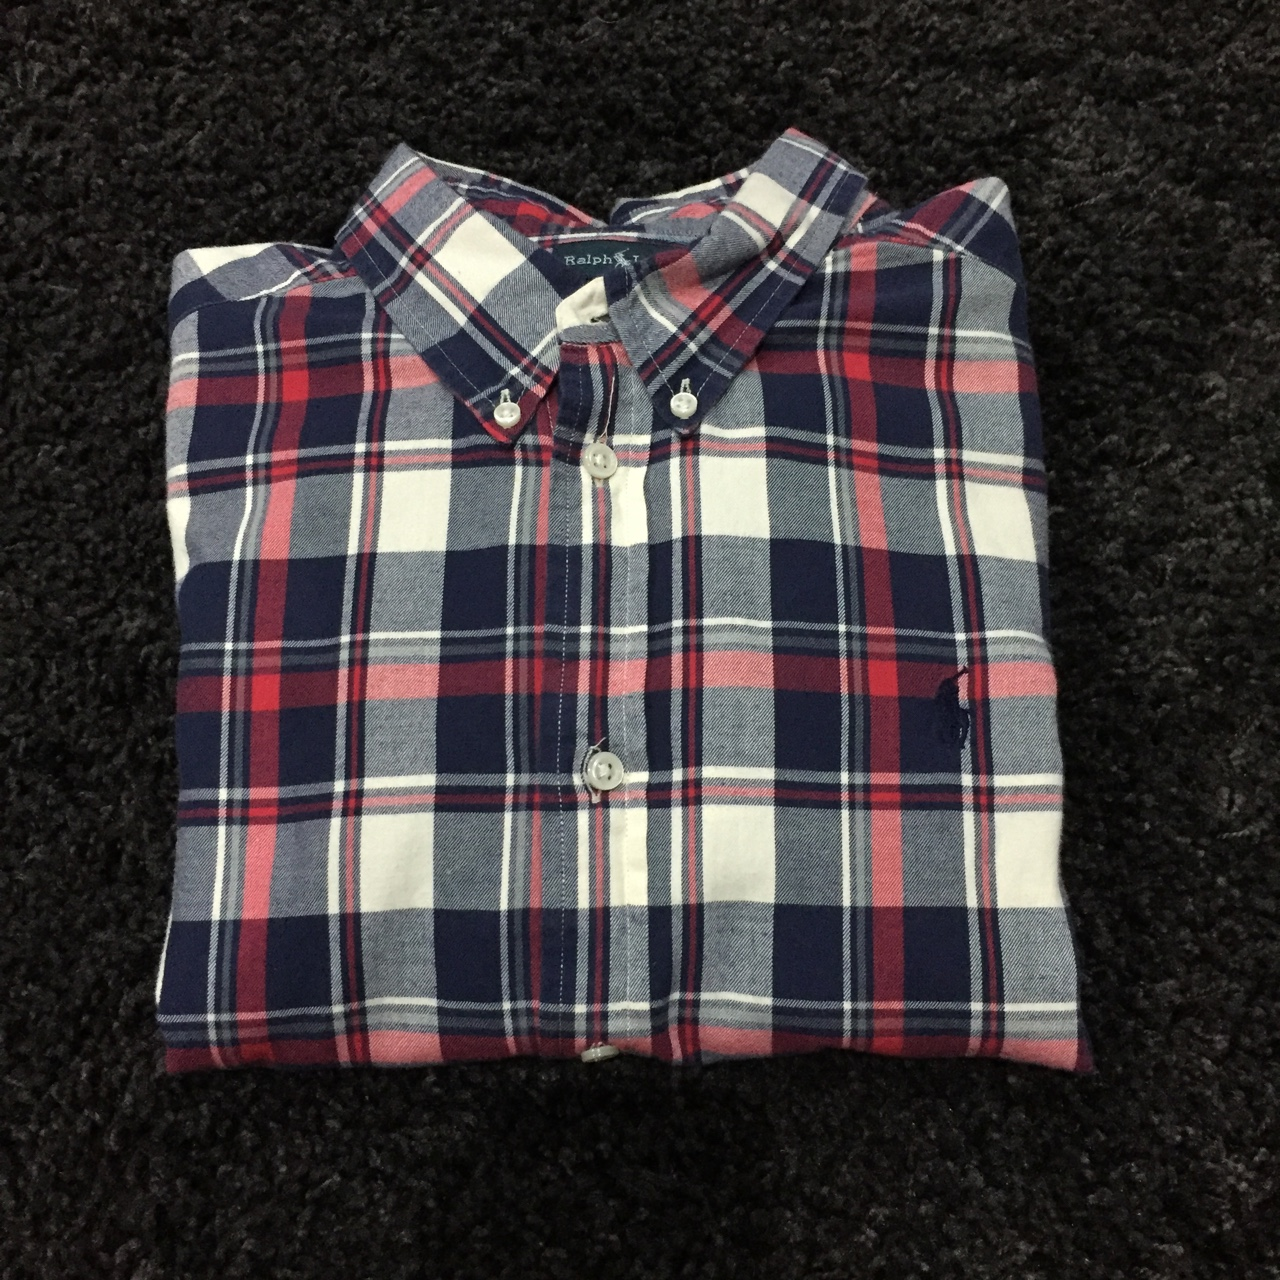 Ralph Lauren plaid checker shirt size small kids xl Depop